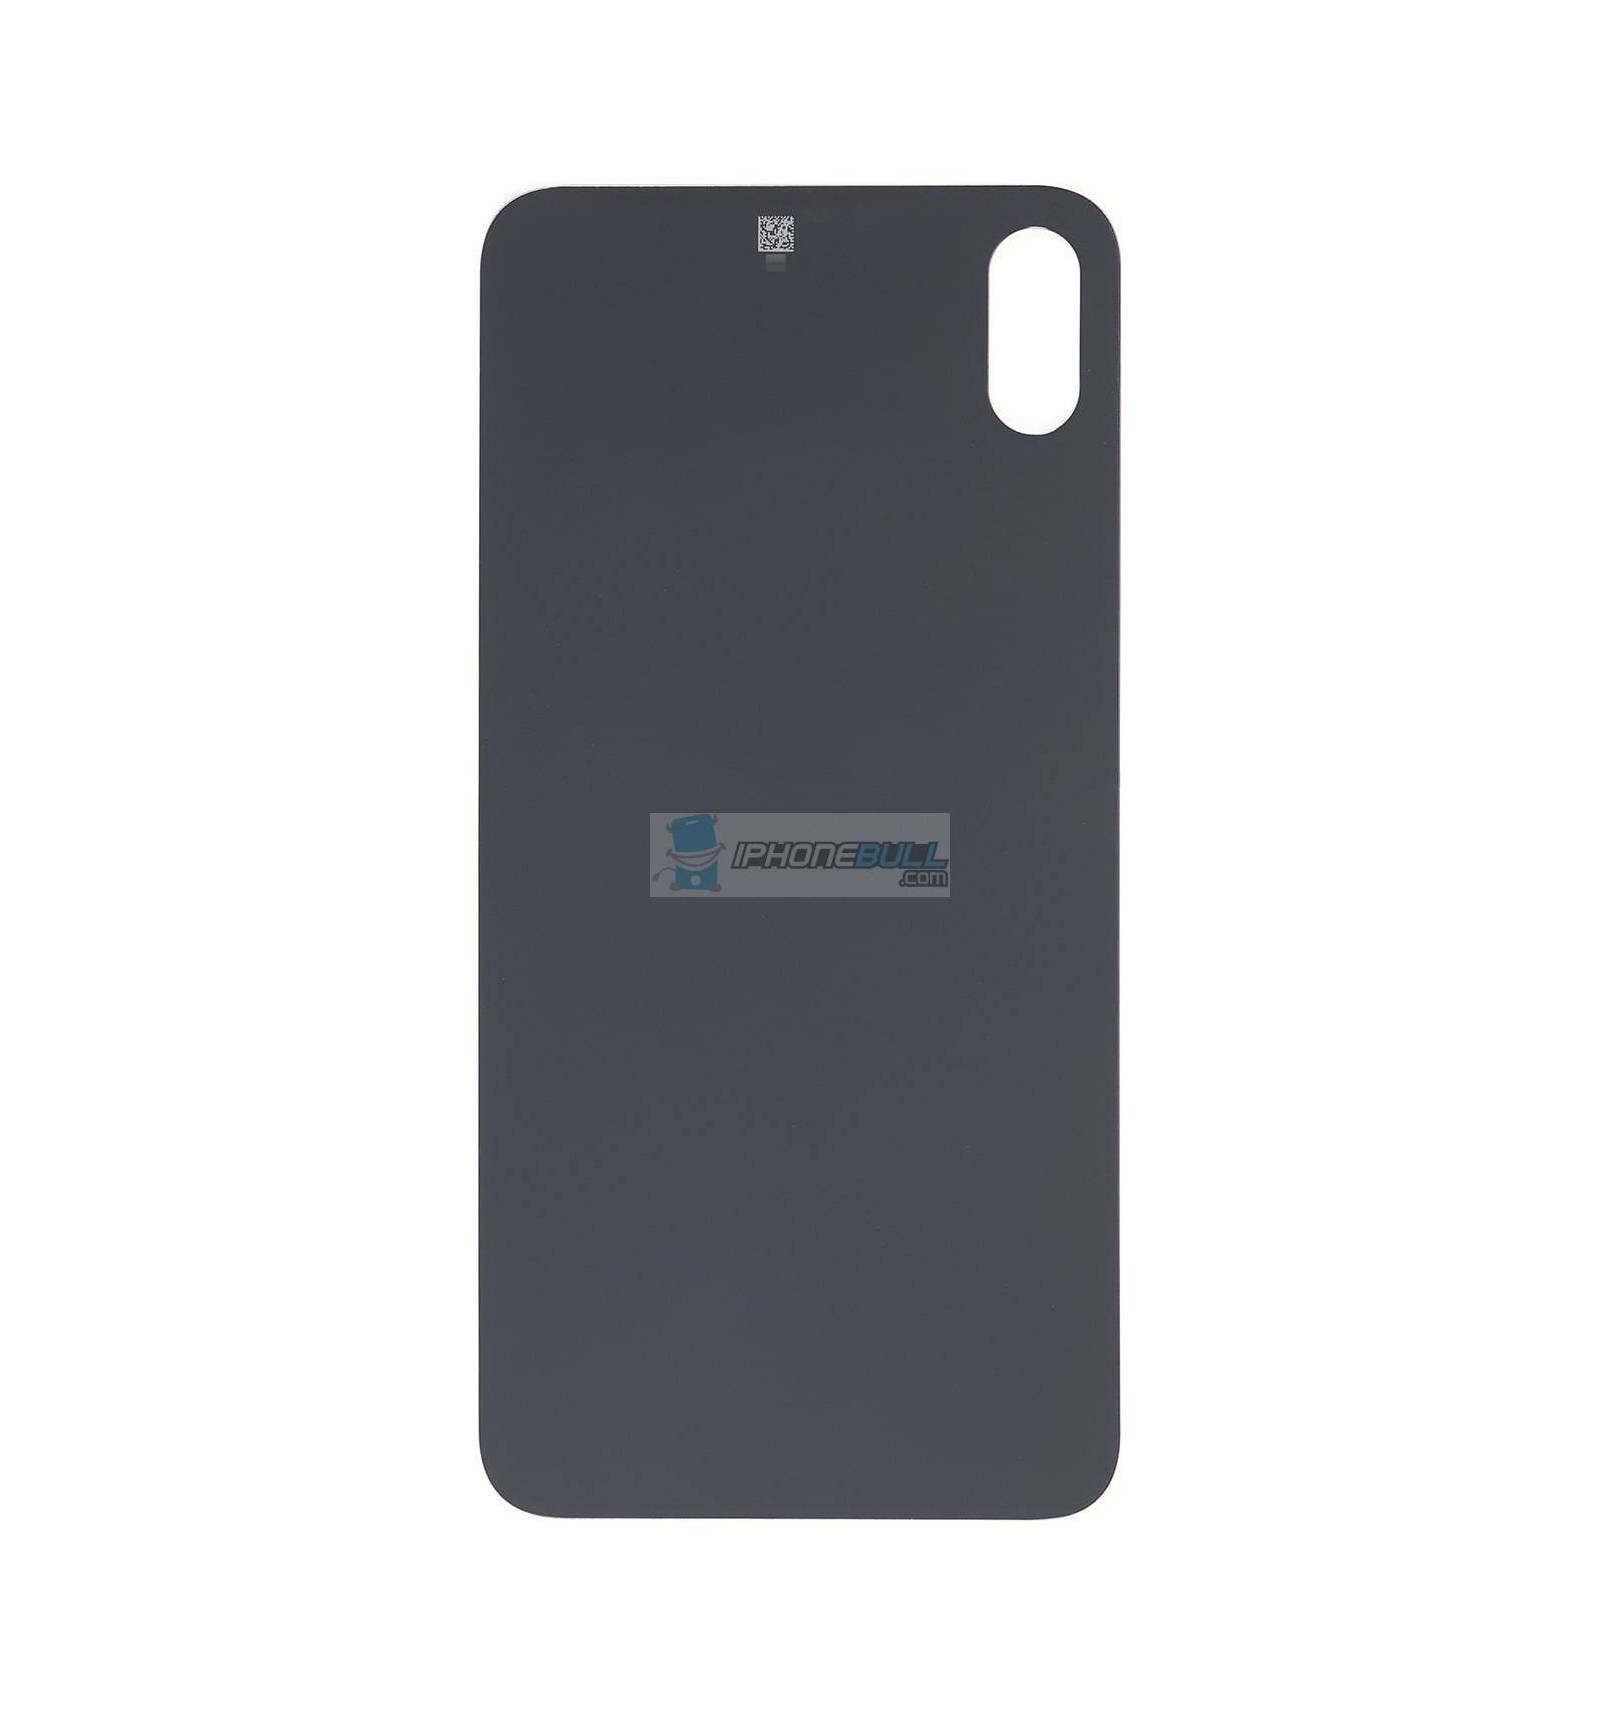 ae44386ace4 Tapa Trasera Iphone Xs Max (A2101) - Negro   Repuestos Iphone